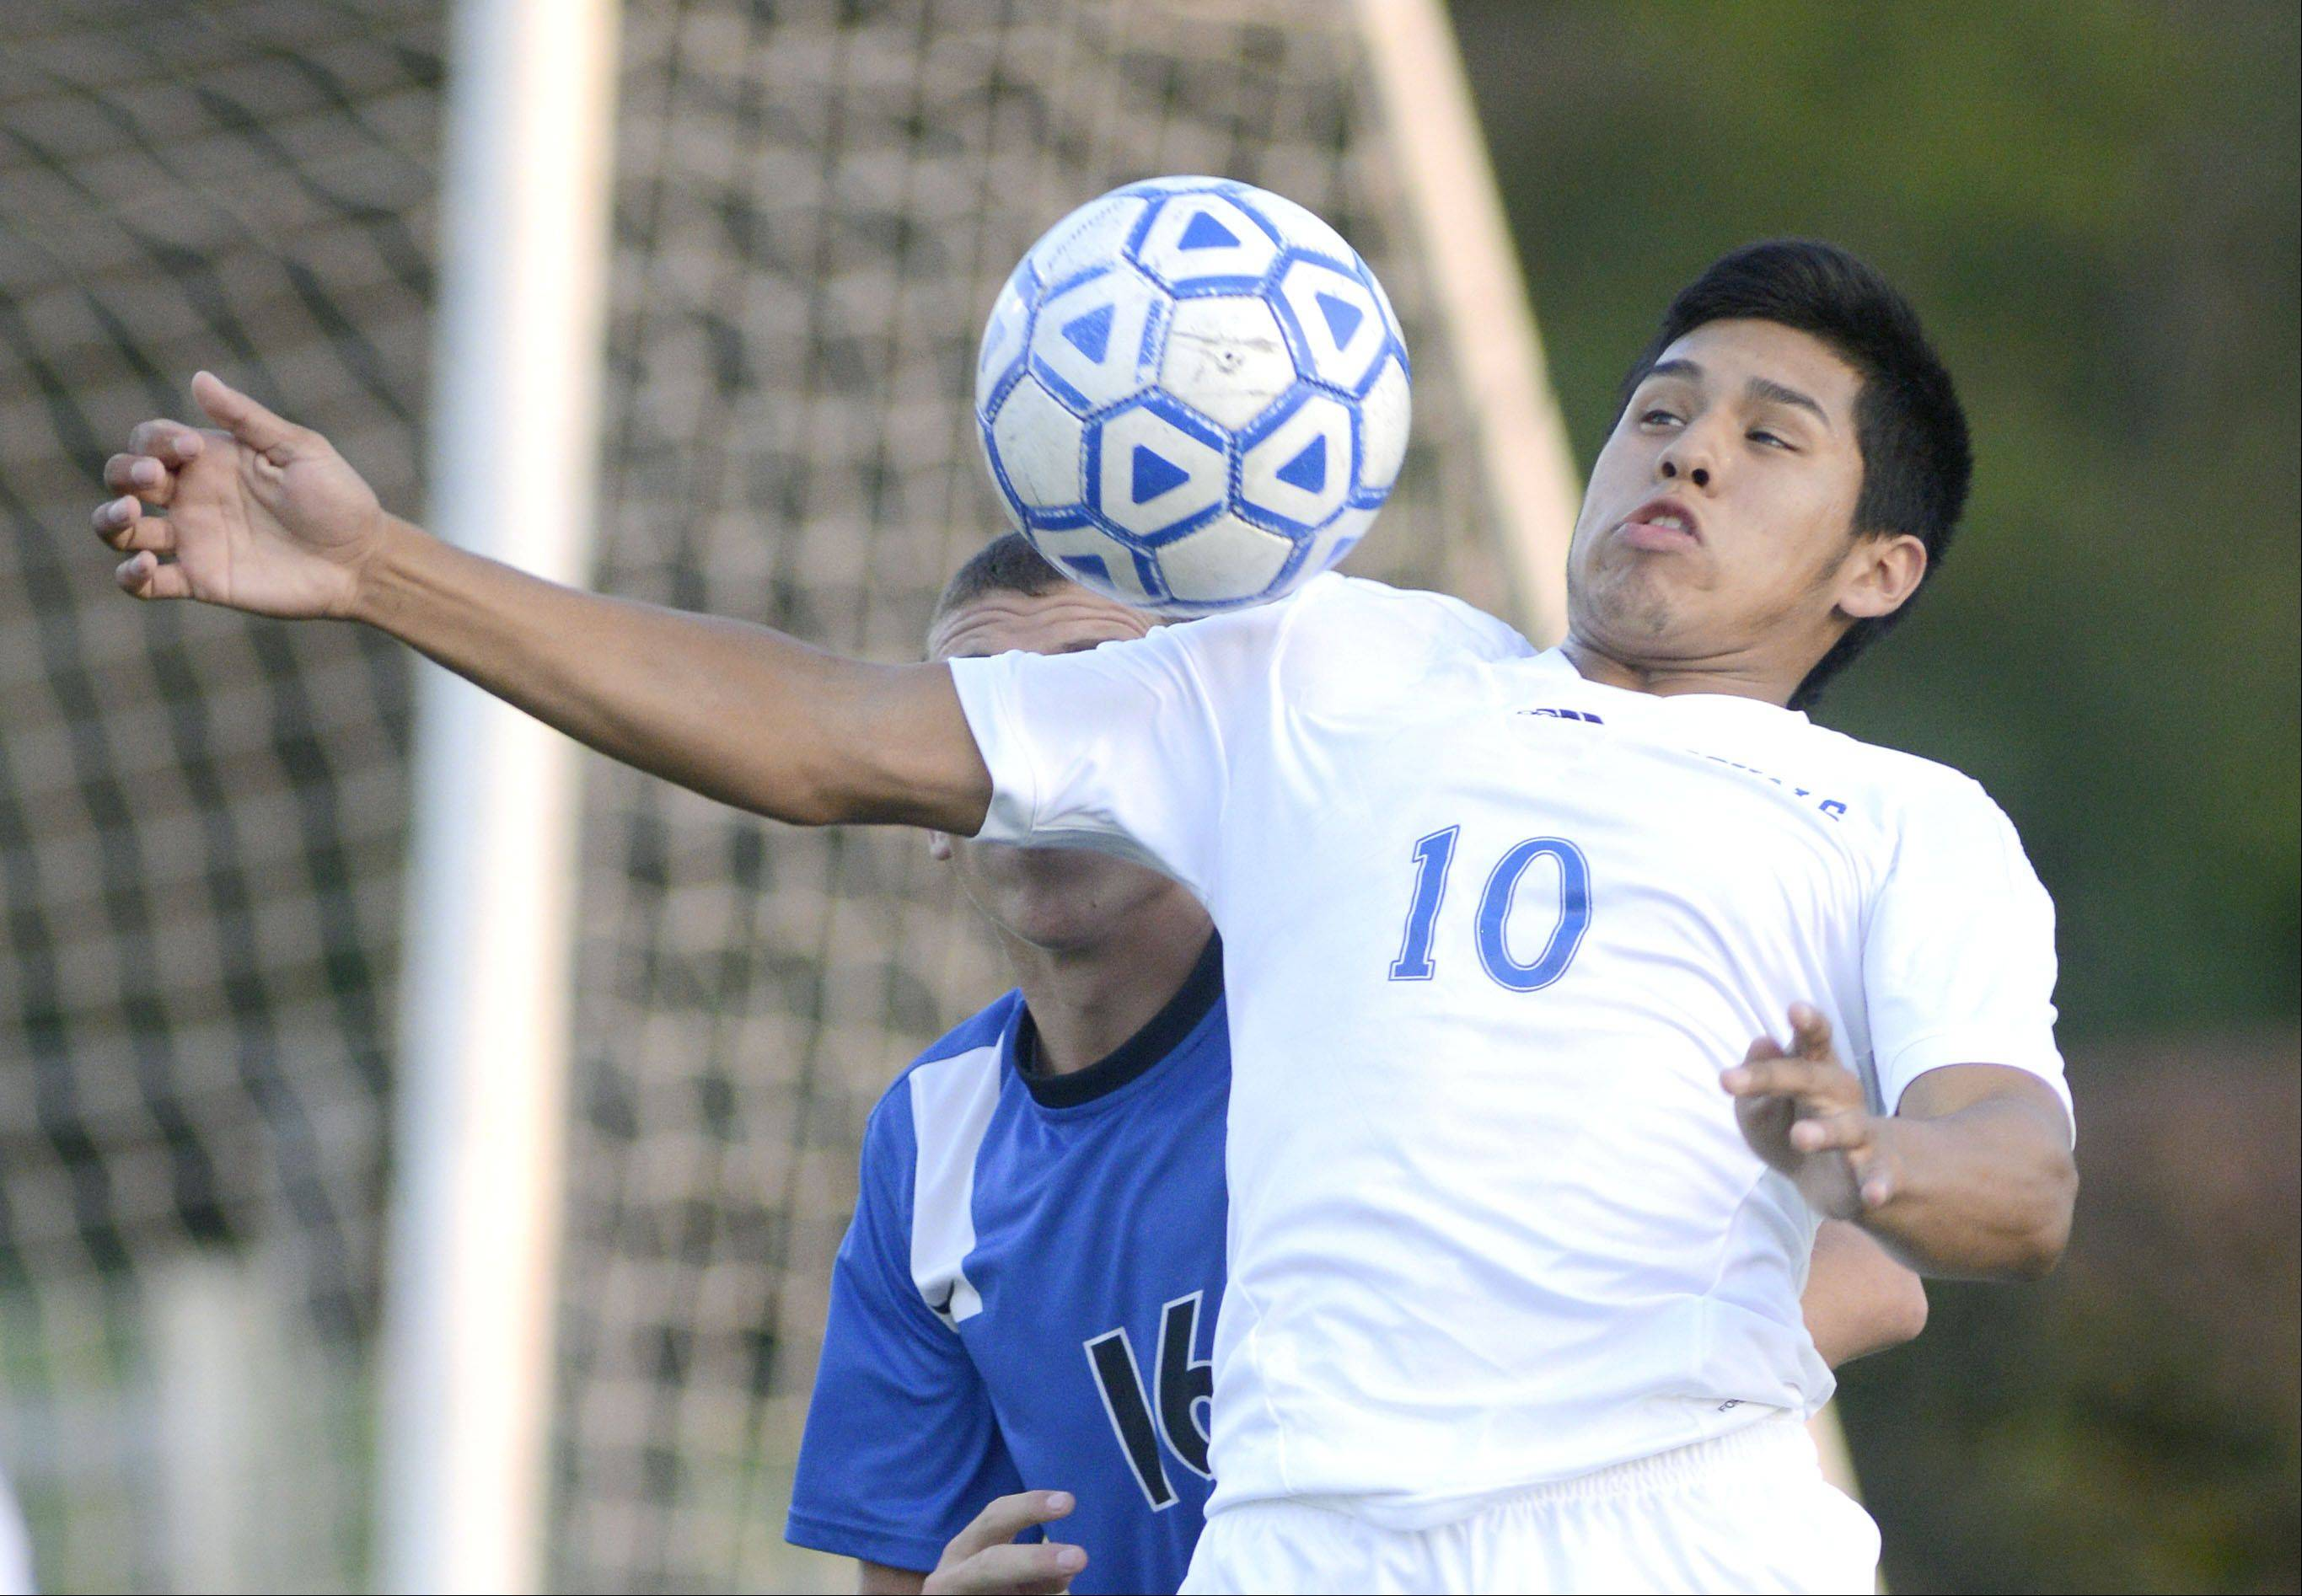 Larkin's Gonsalo Garcia leaps in front of St. Charles North's Nick Graham to deflect the ball during Tuesday's soccer match.